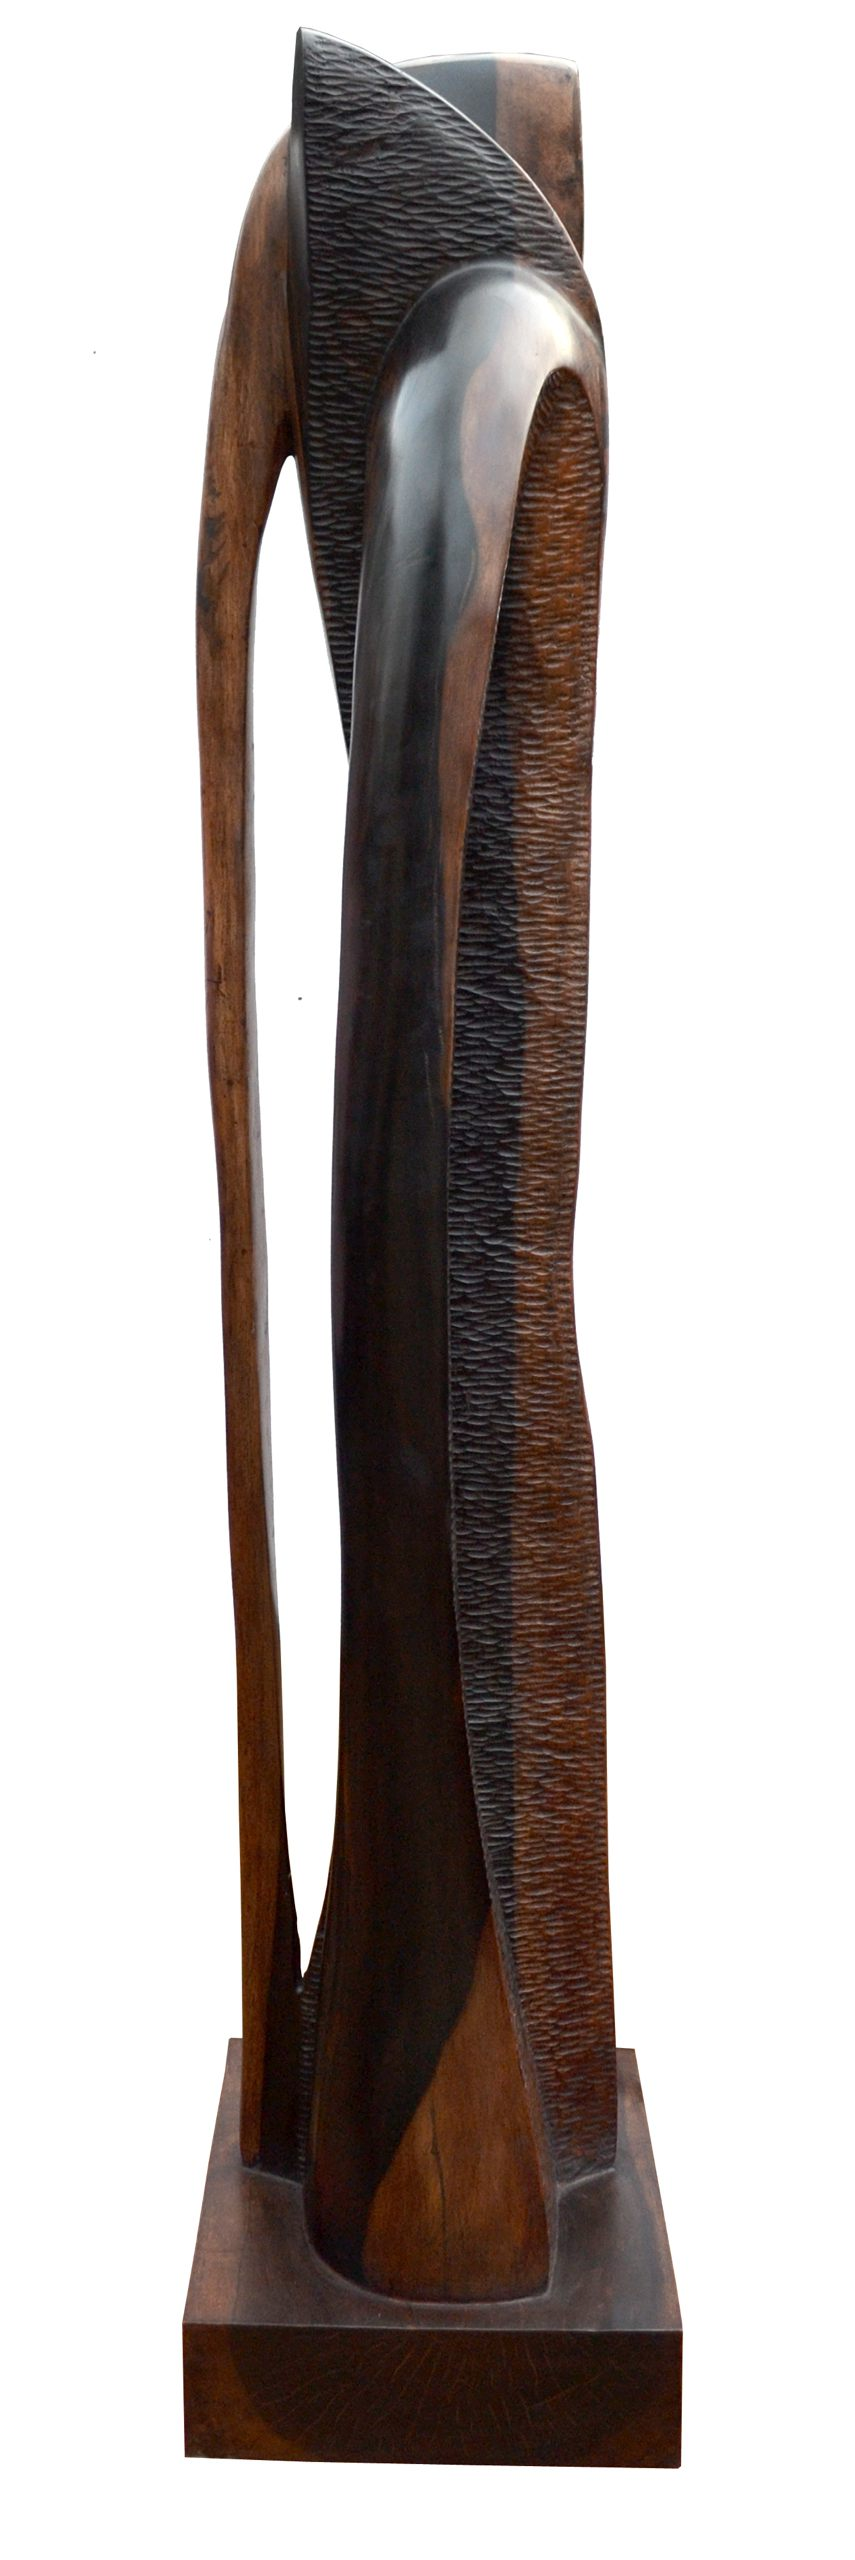 Intimate Embrace (57 Inches) Wood 2013 (3)